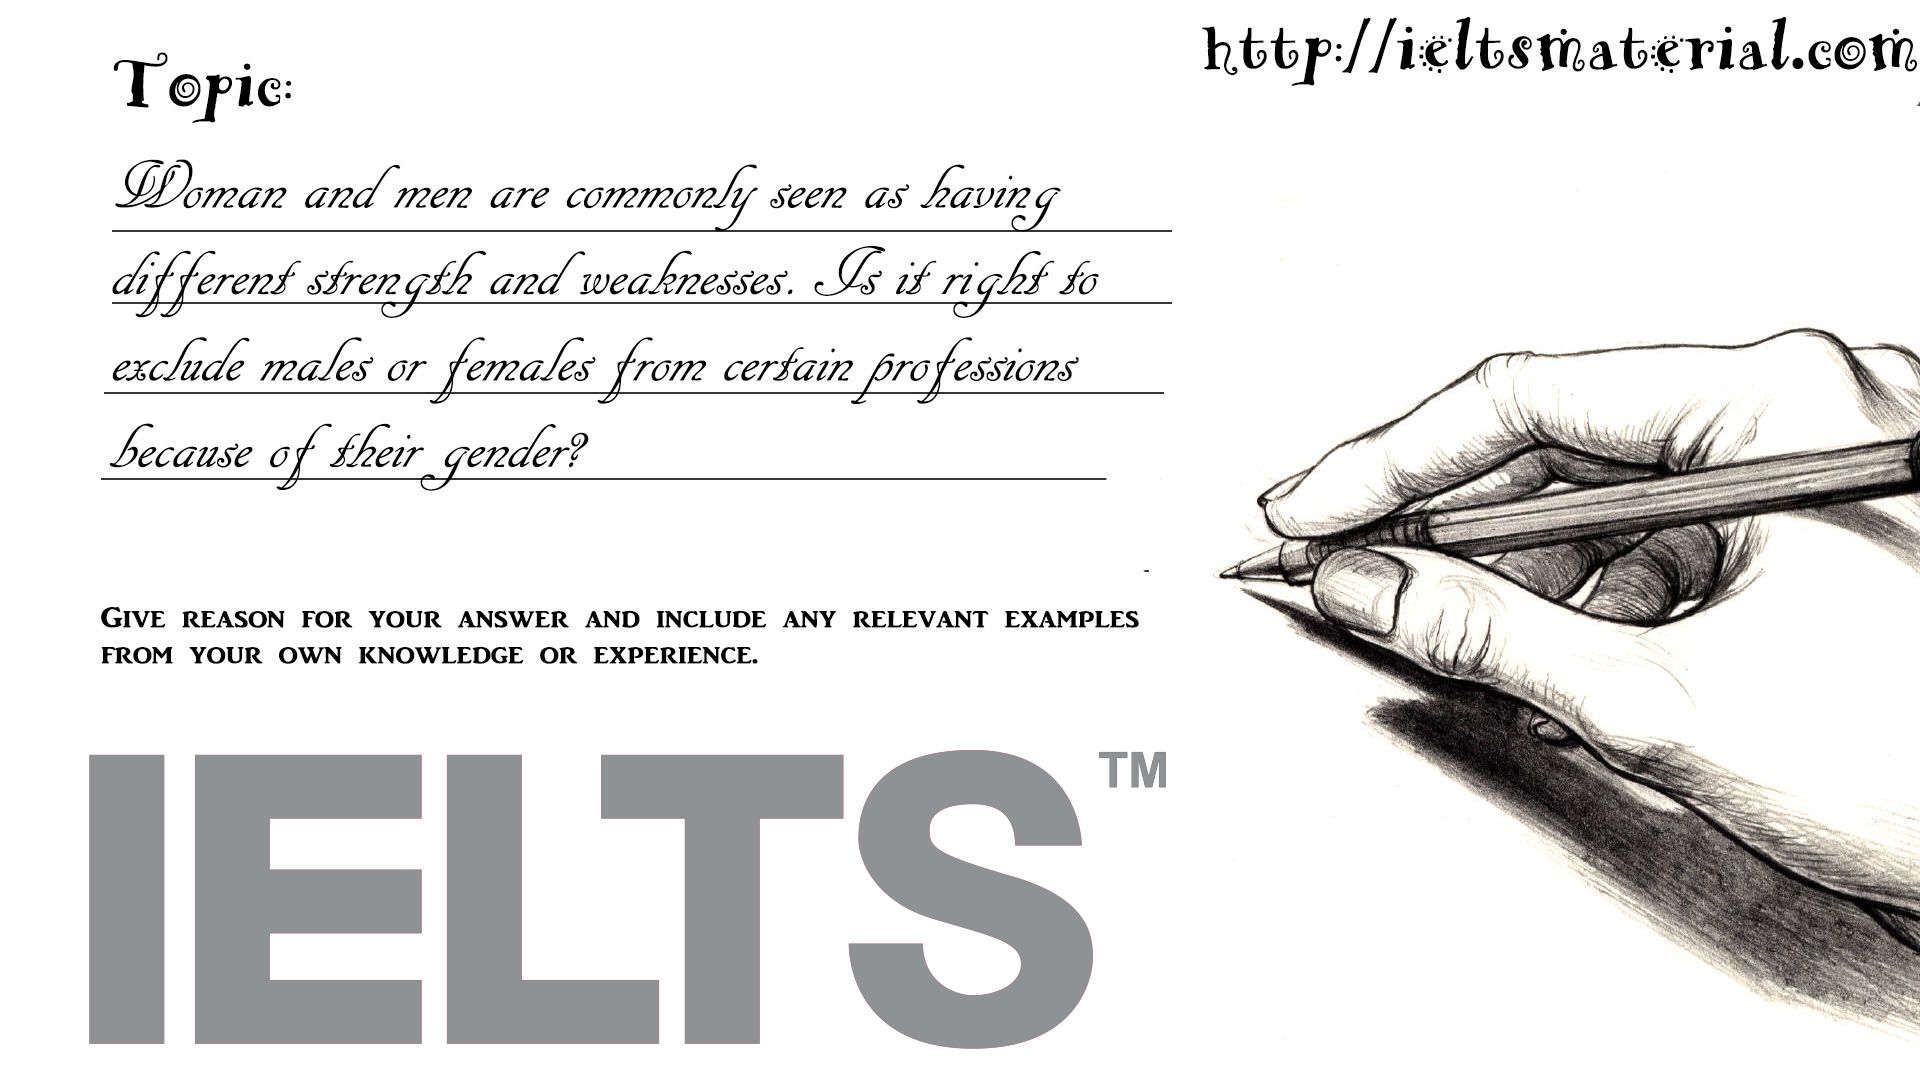 academic ielts writing task topic allaboutielts academic ielts writing task 2 topic 07 allaboutielts writing